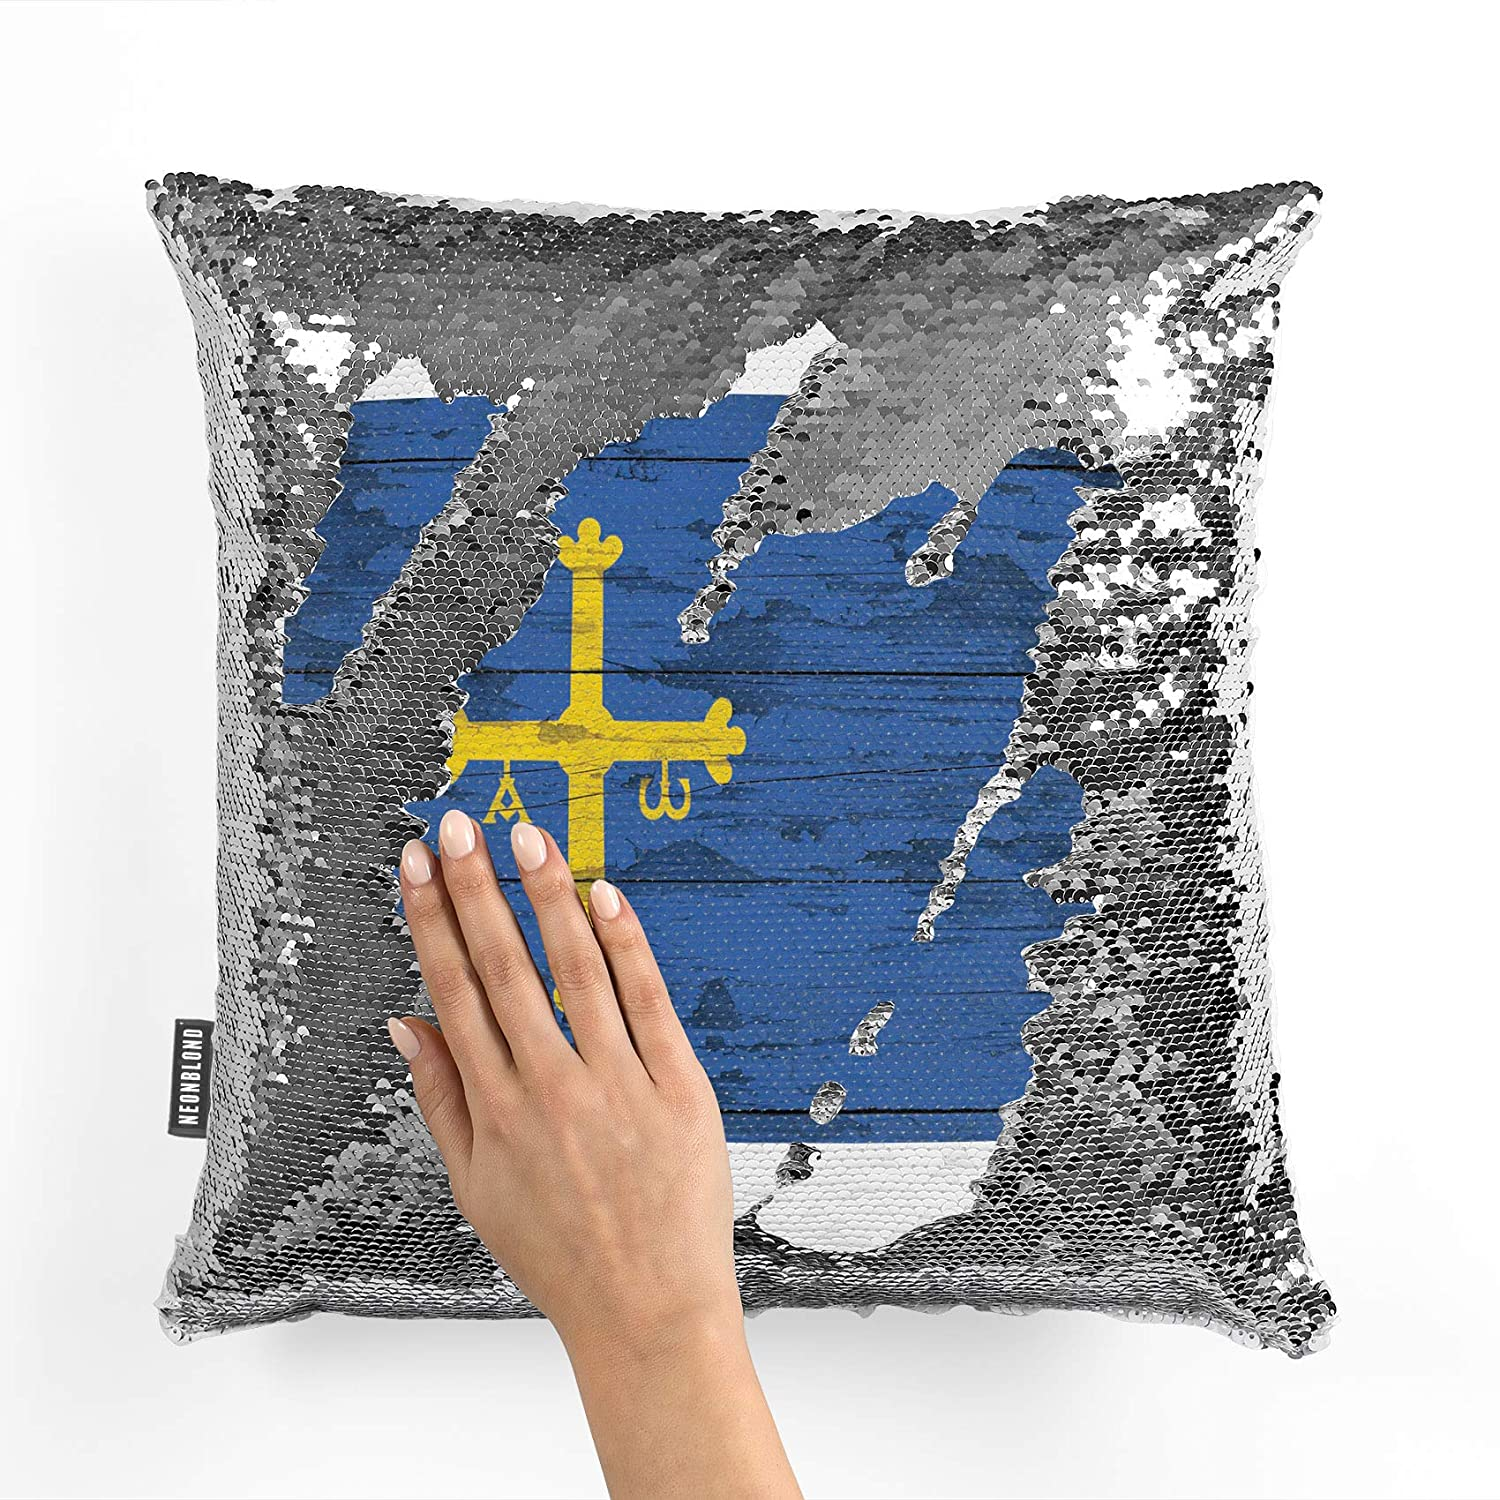 Amazon.com: NEONBLOND Mermaid Pillow Cover Flag on Wood ...